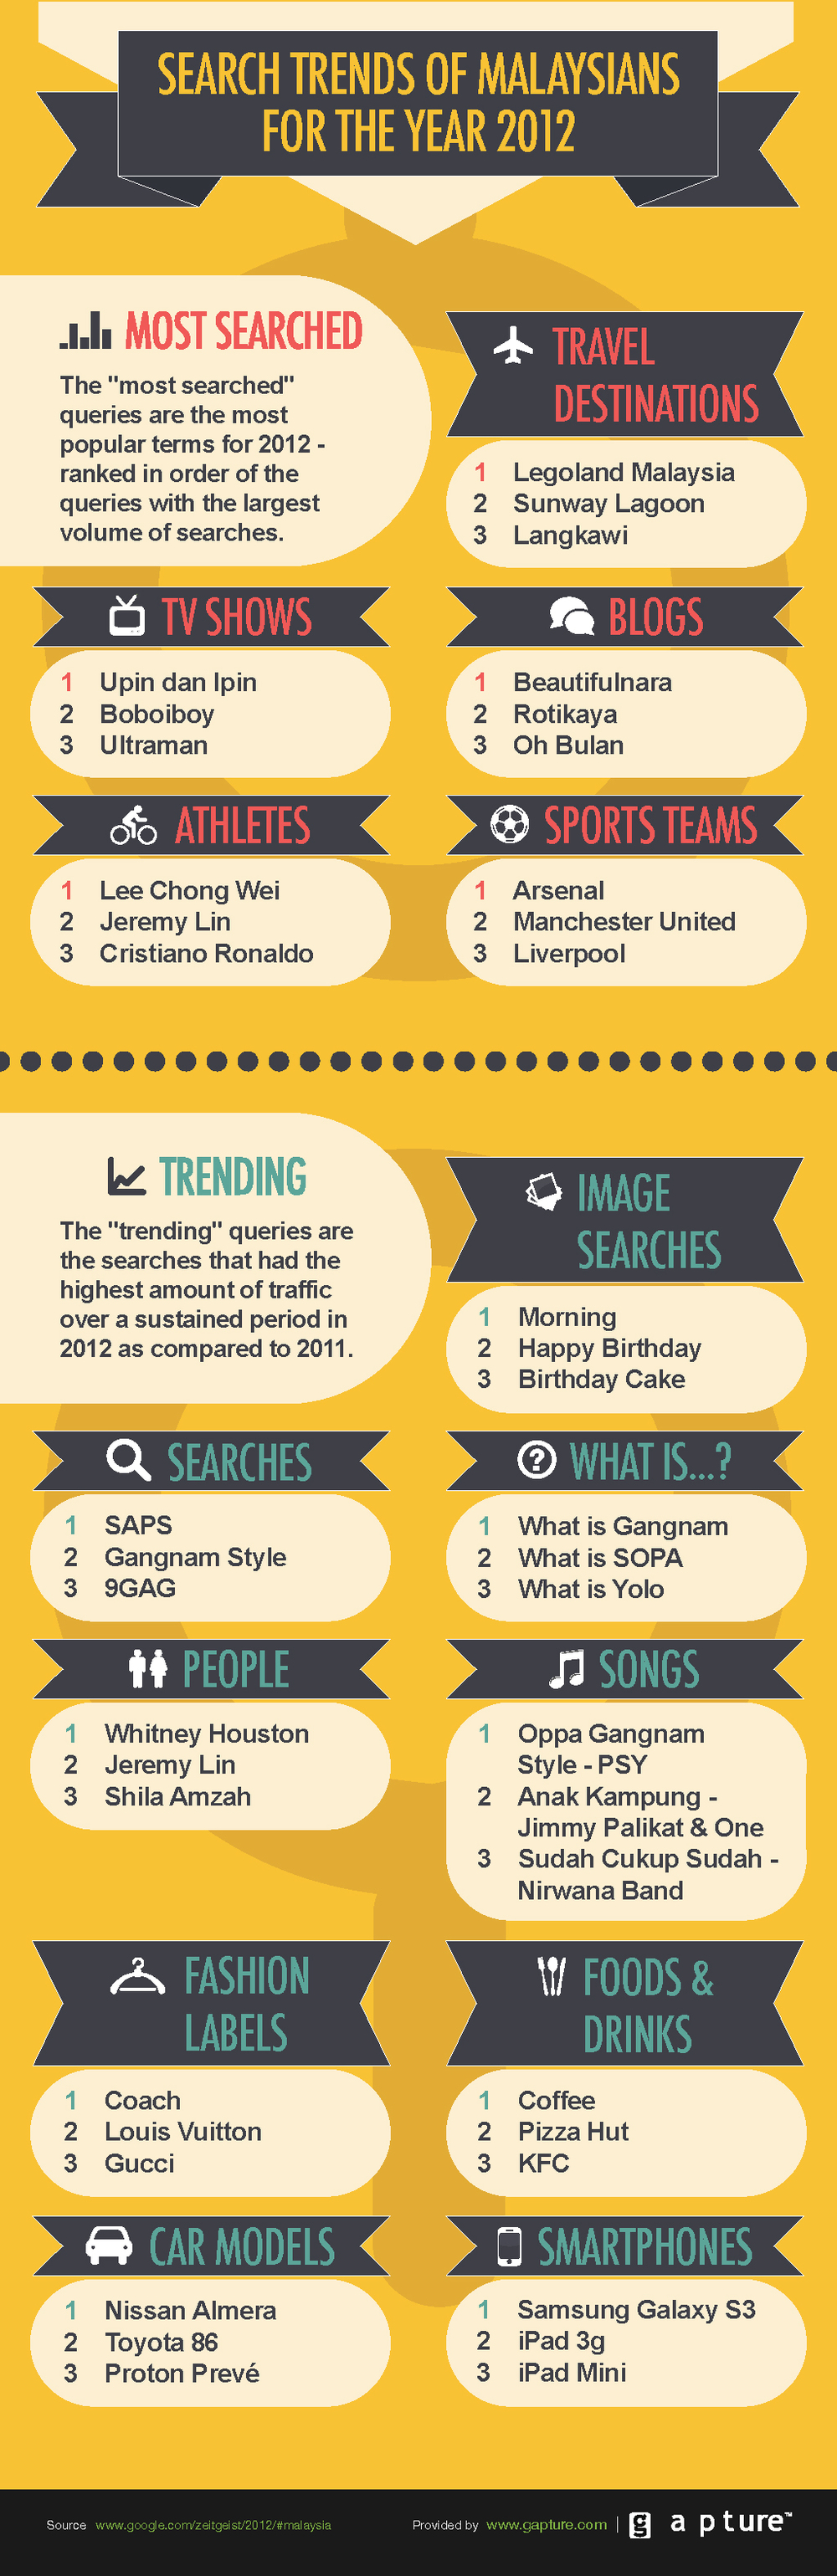 Google Search Trends of Malaysians for the Year 2012